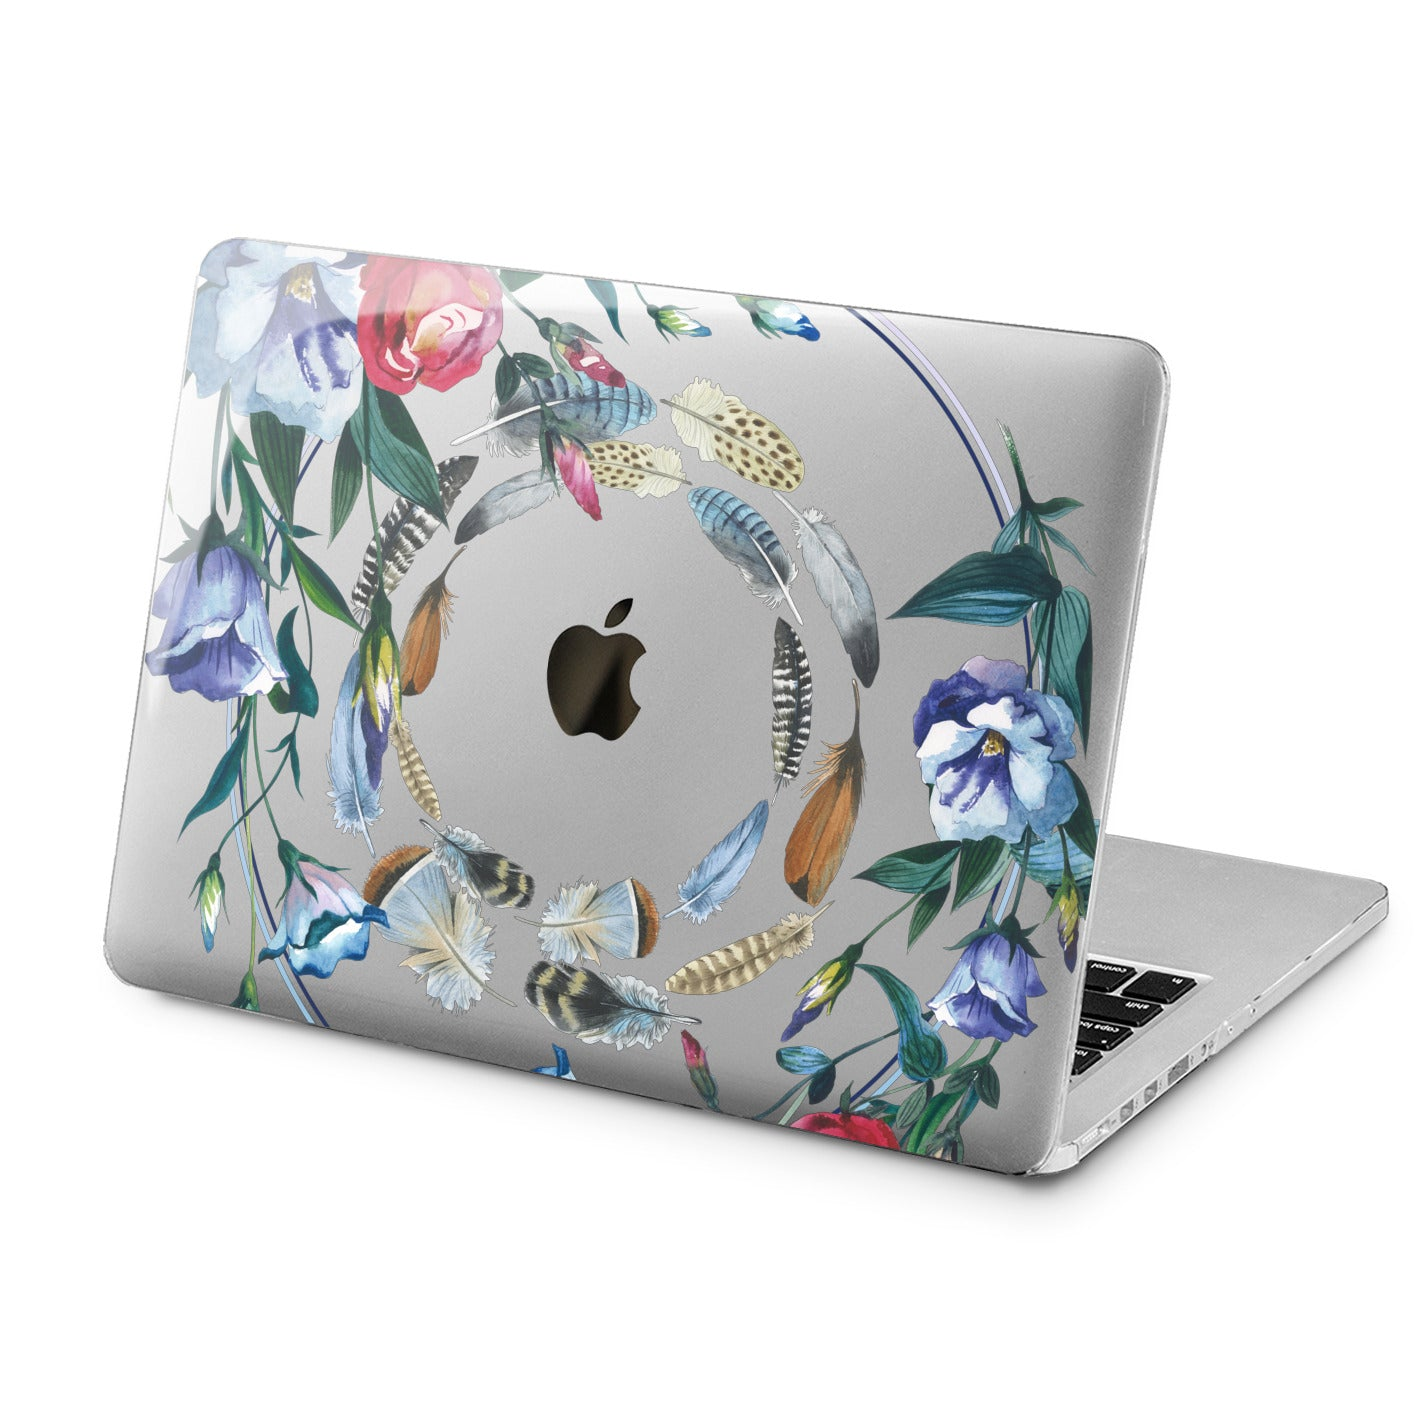 Lex Altern Lex Altern Floral Feathers Case for your Laptop Apple Macbook.